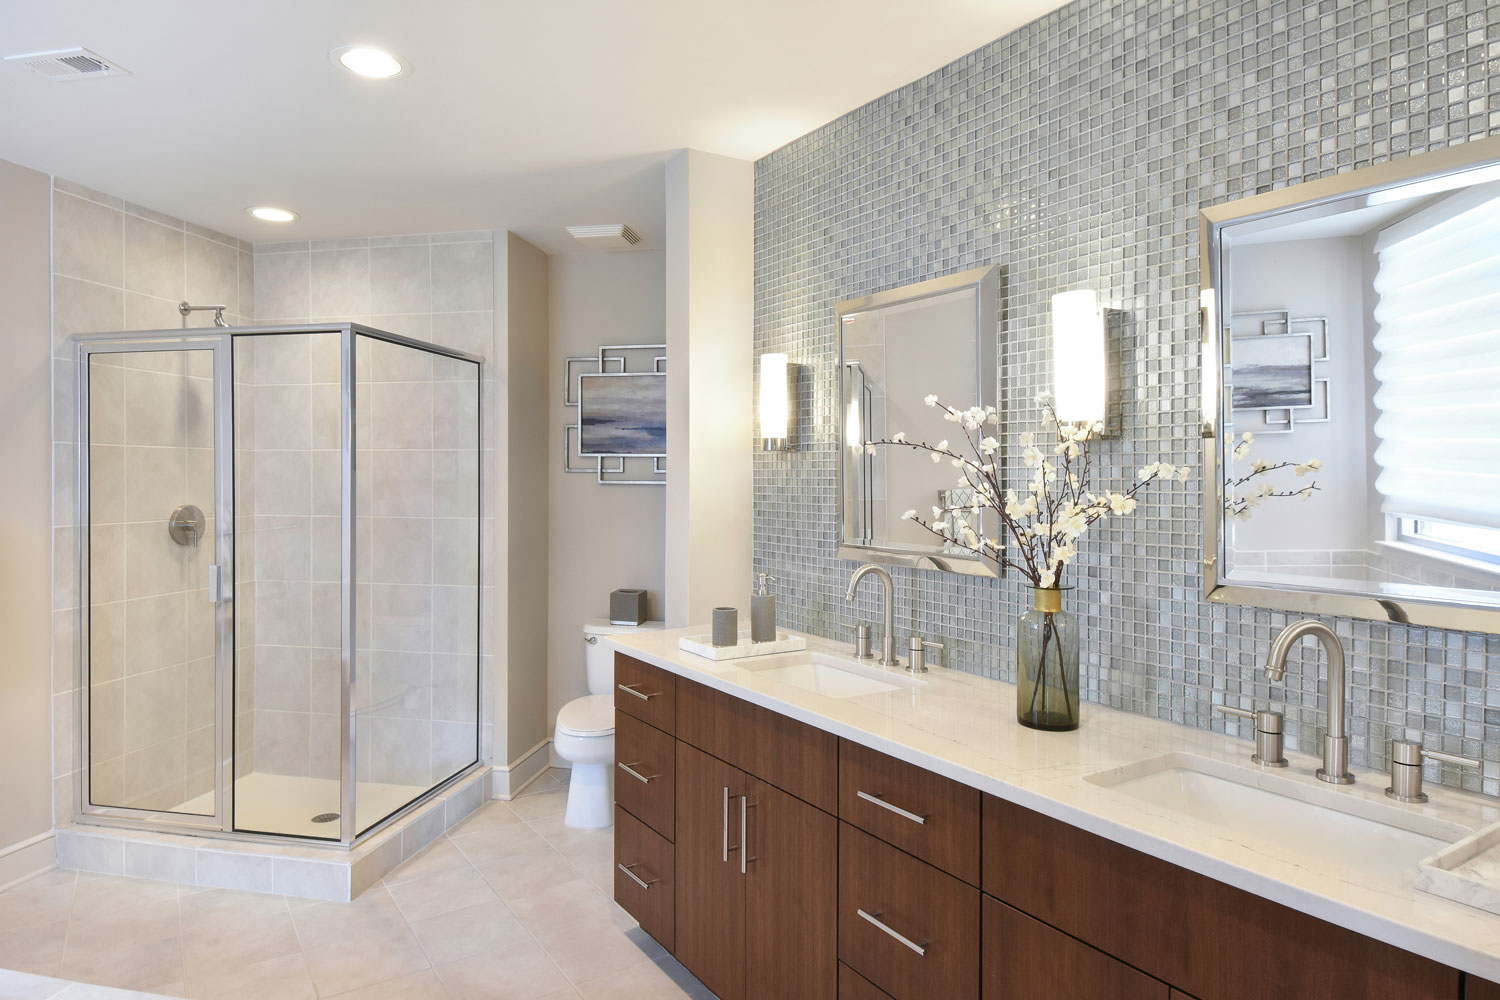 The Luxe bathroom exterior design in Atlanta